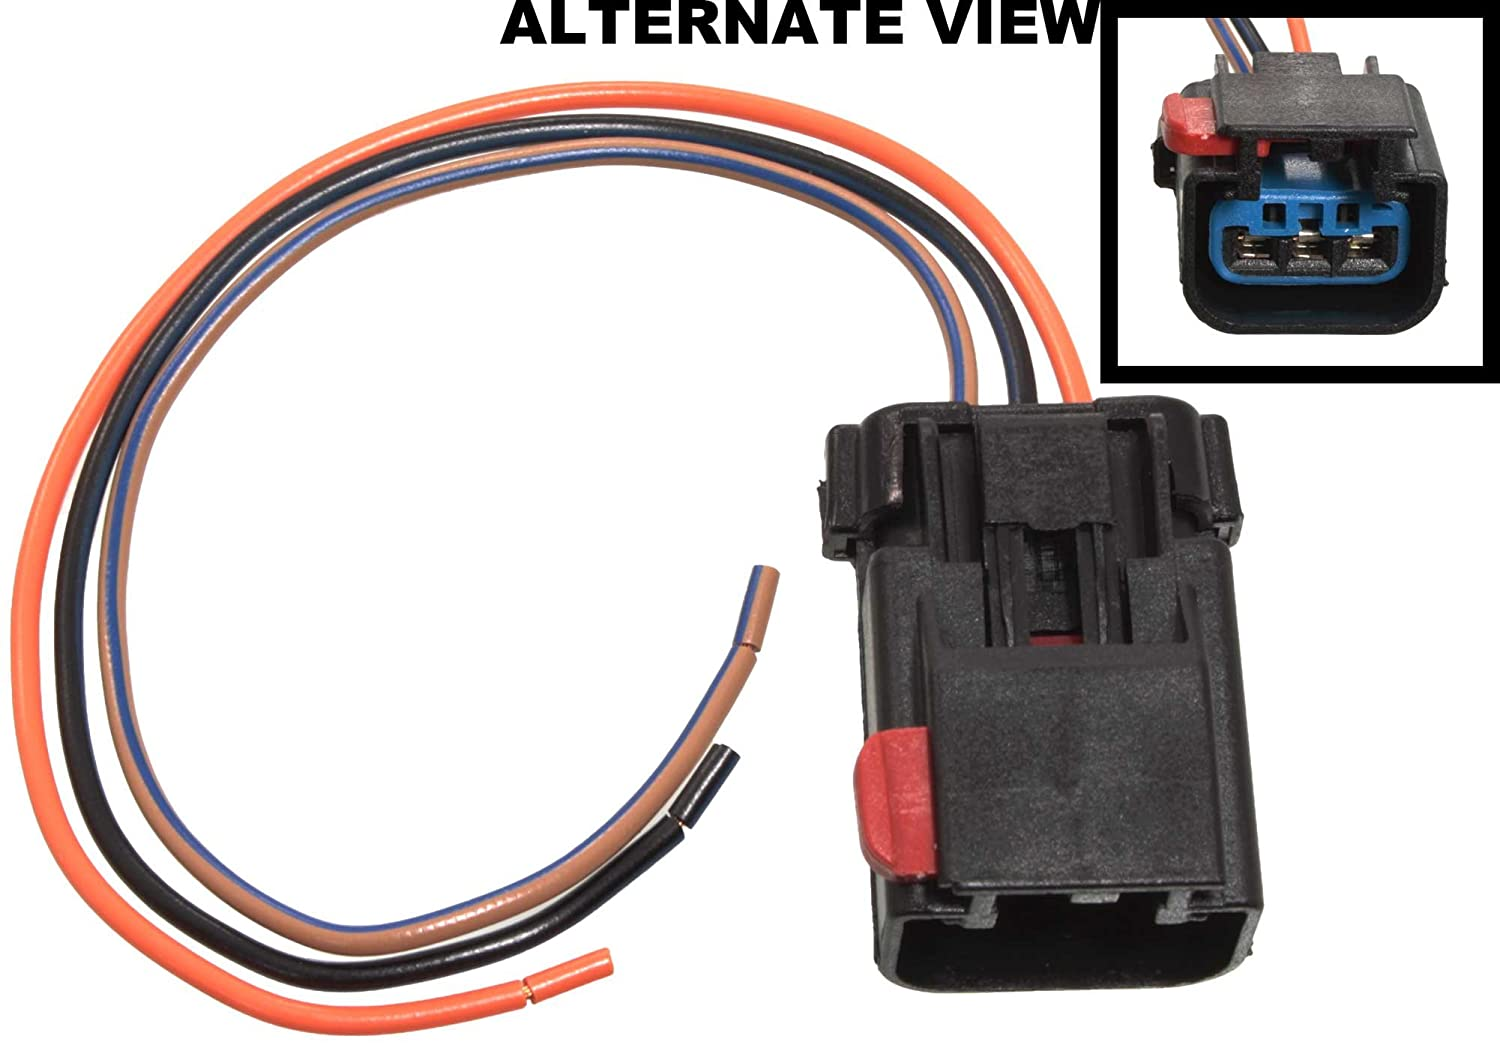 APDTY 756298 Wiring Harness Pigtail Connector 3-Wire Direct Fit Cam on 6 pin wire connector, 3 pin connector, 3 terminal connector, 3 wire wiring harness, 3 hose connector, 3 wire power connector, screw terminal connector,